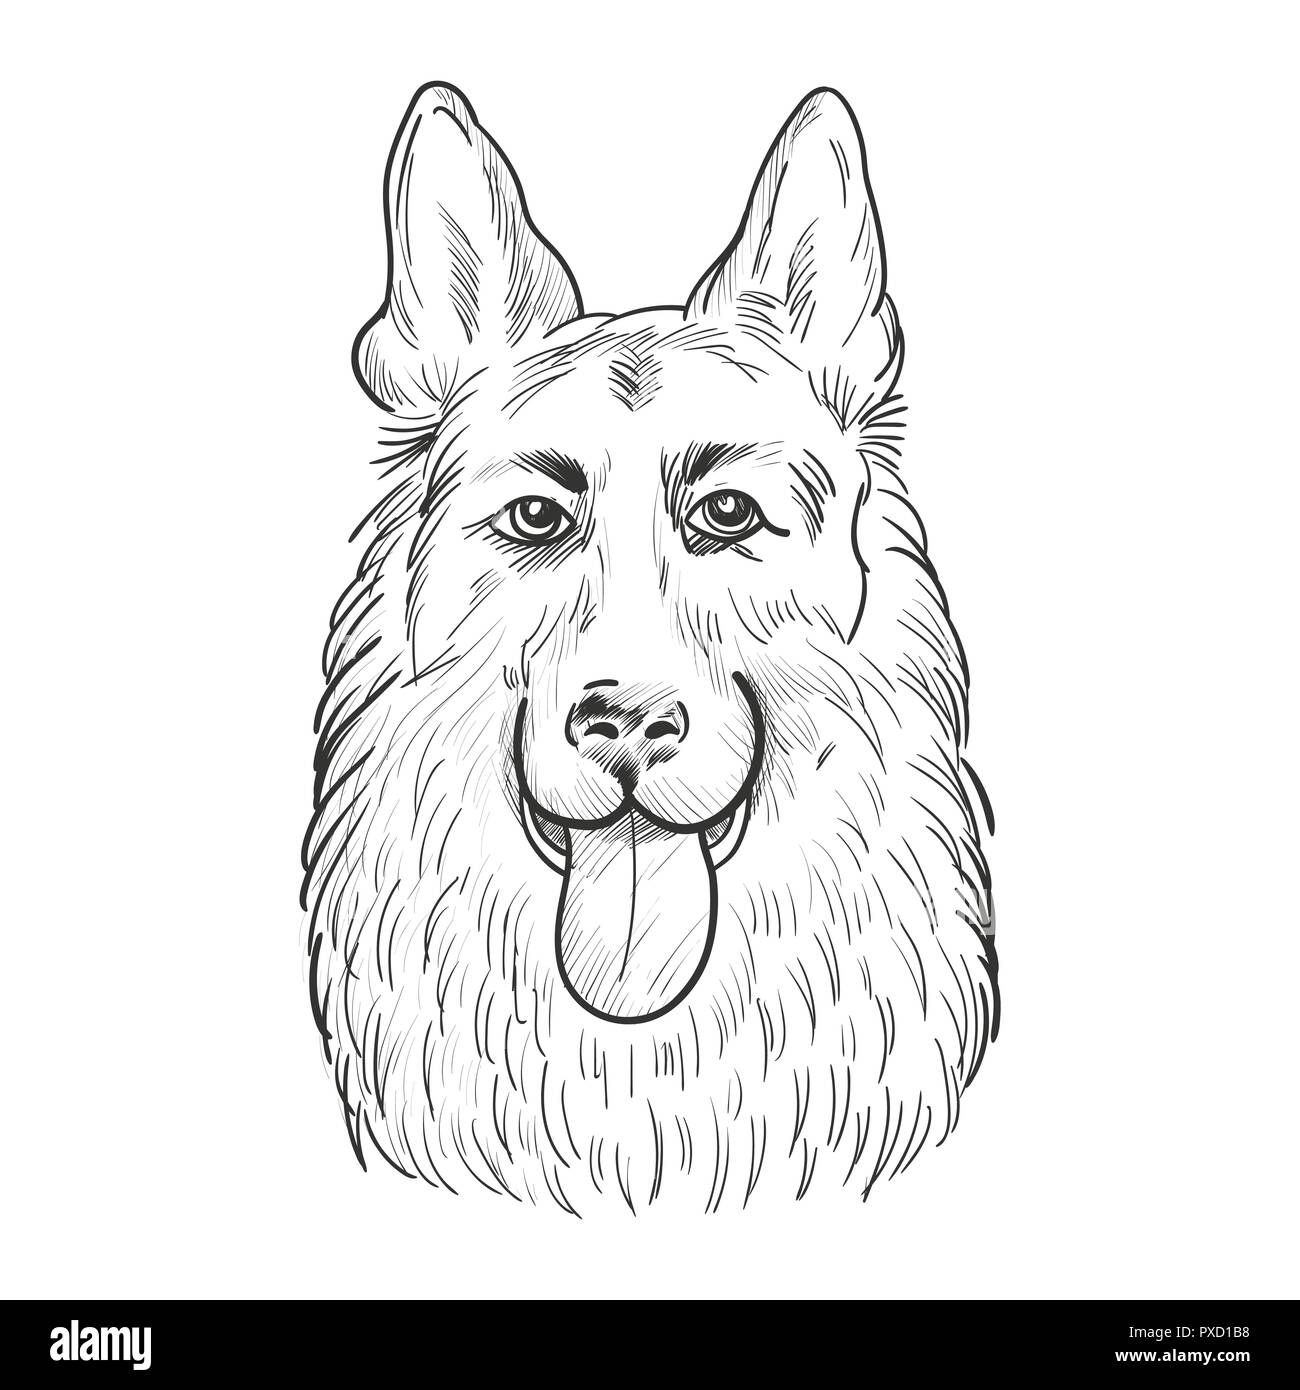 German Shepherd dog face isolated on white background. Working dog head hand drawn sketch. - Stock Vector